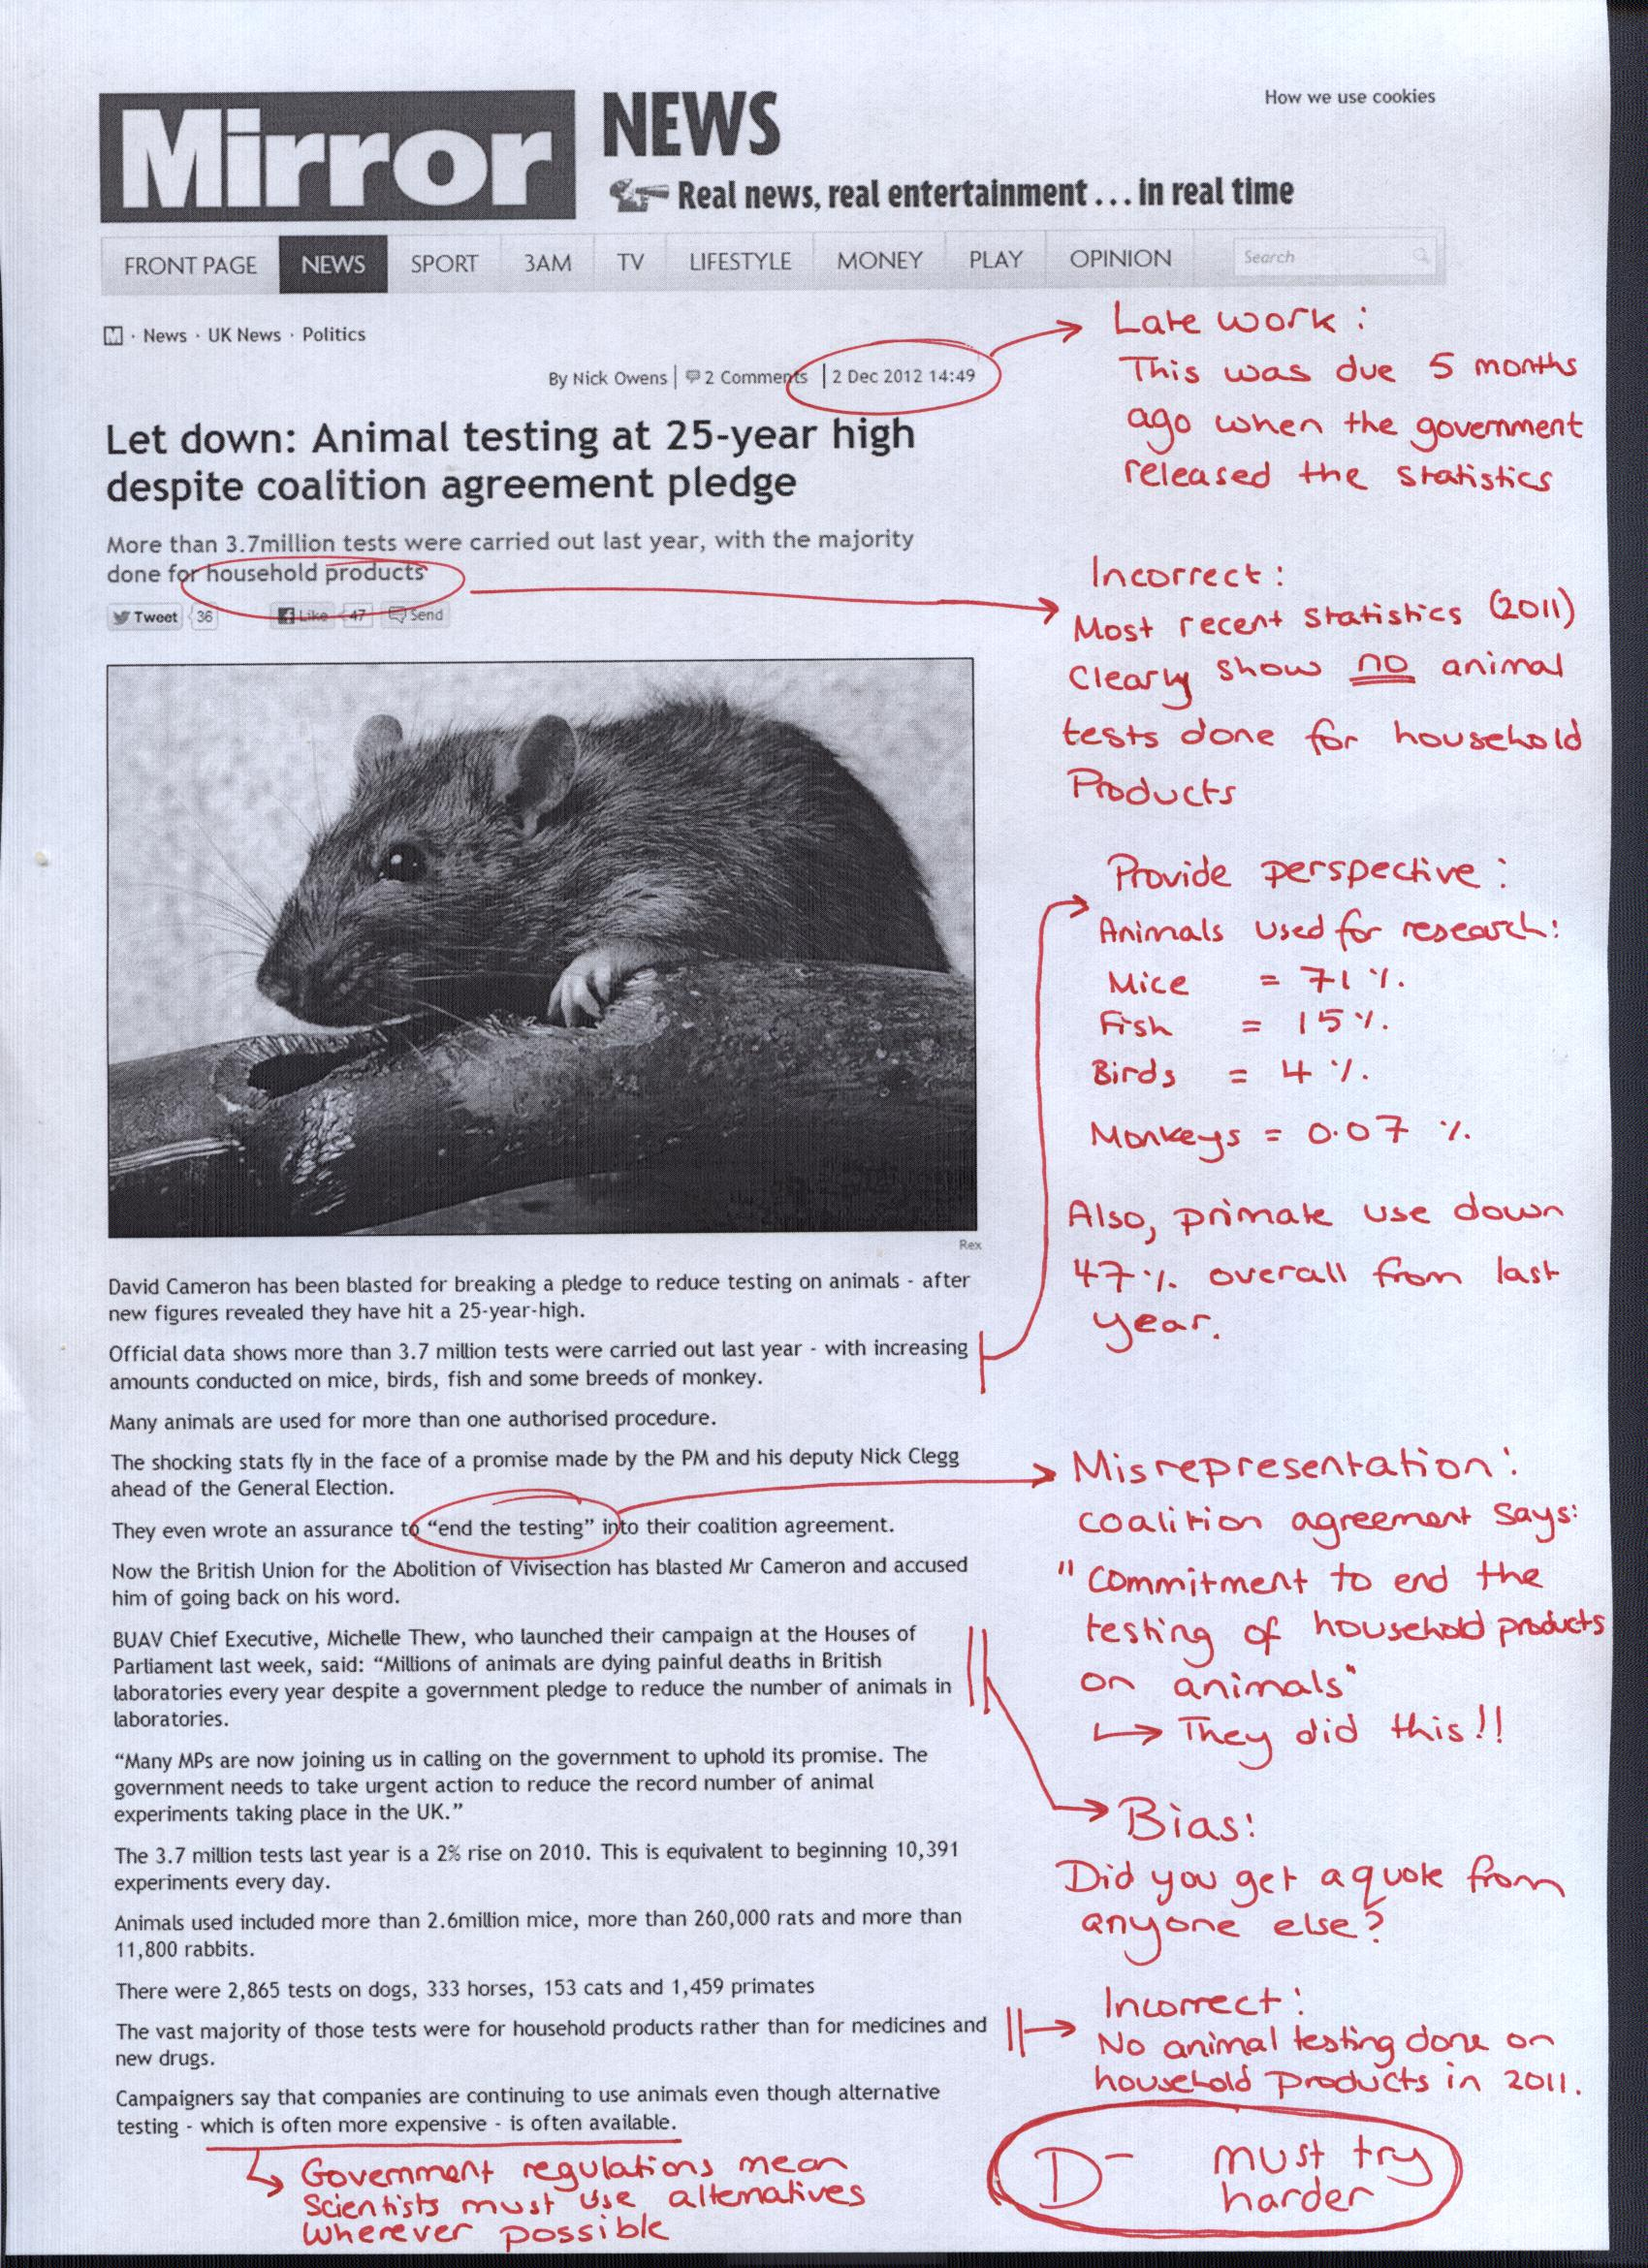 Argumentative Essays On Animal Cruelty   Docoments Ojazlink  Saad Arslan Research in Animal Science Kenneth McKeever While I do not have  too much experience